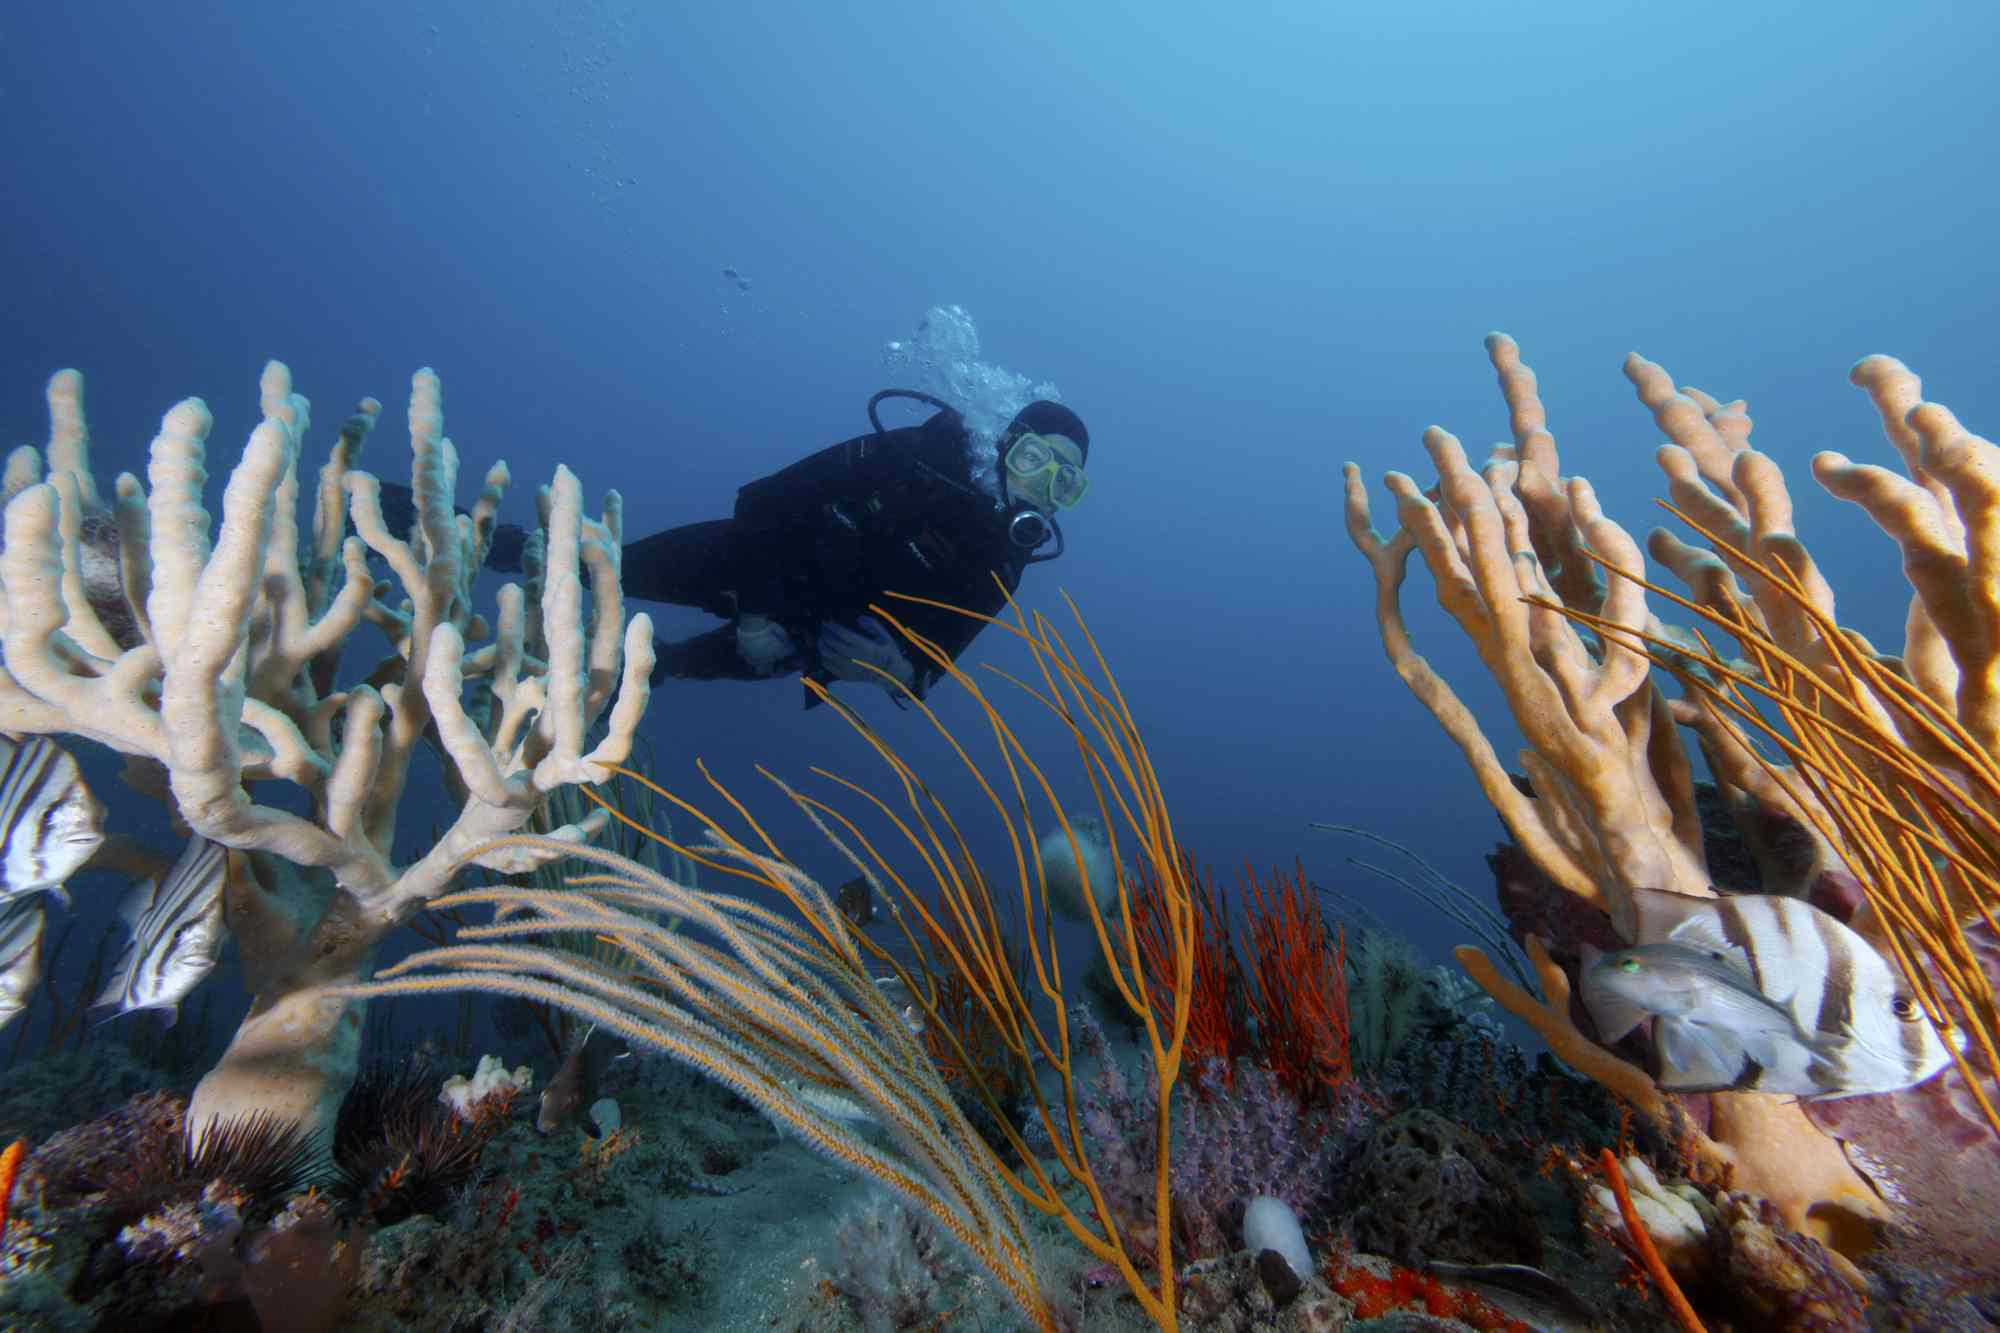 A diver takes in the ocean wilderness at Gray's Reef National Marine Sanctuary off the Georgia coast